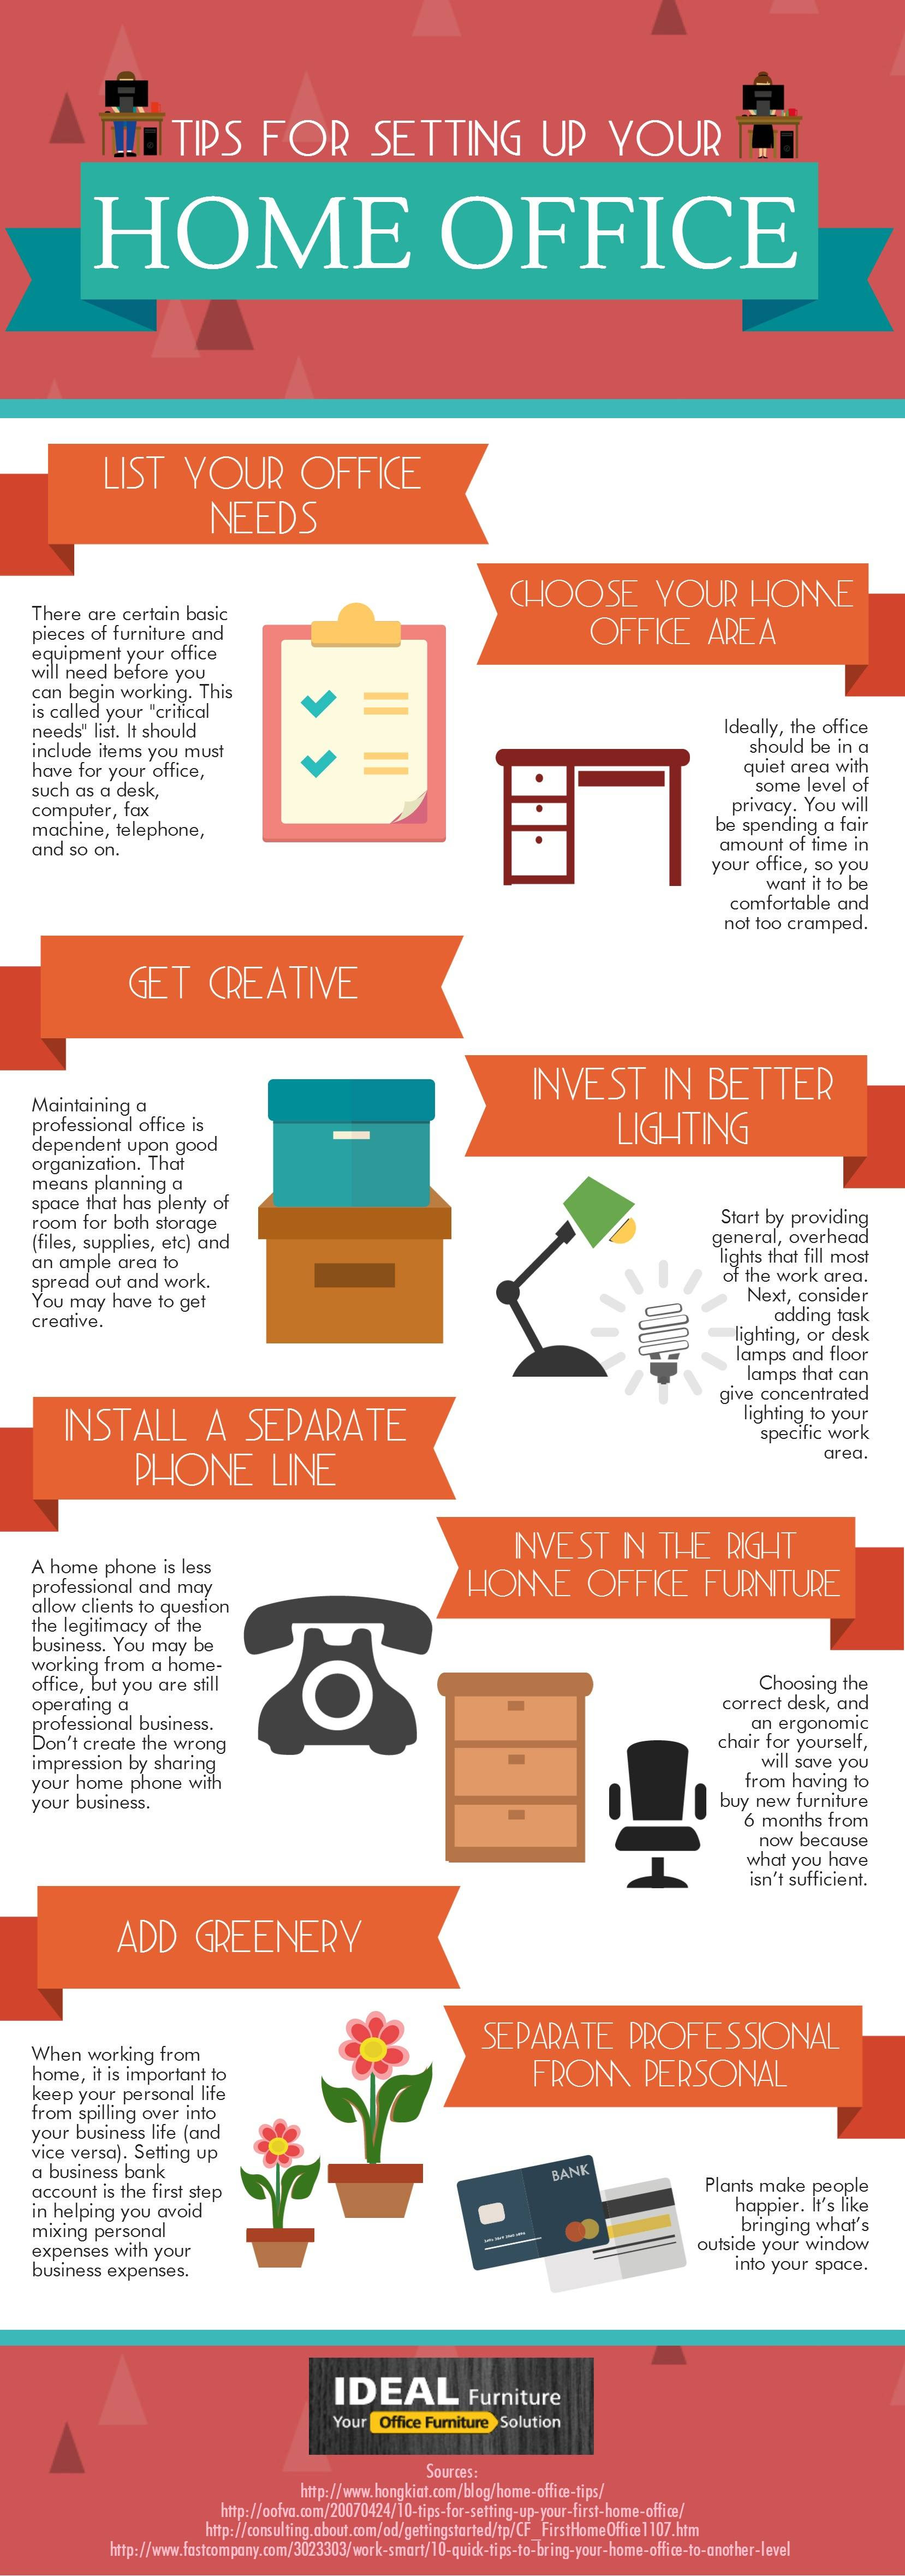 Infographic: Tips For Setting Up Your Home Office #infographic